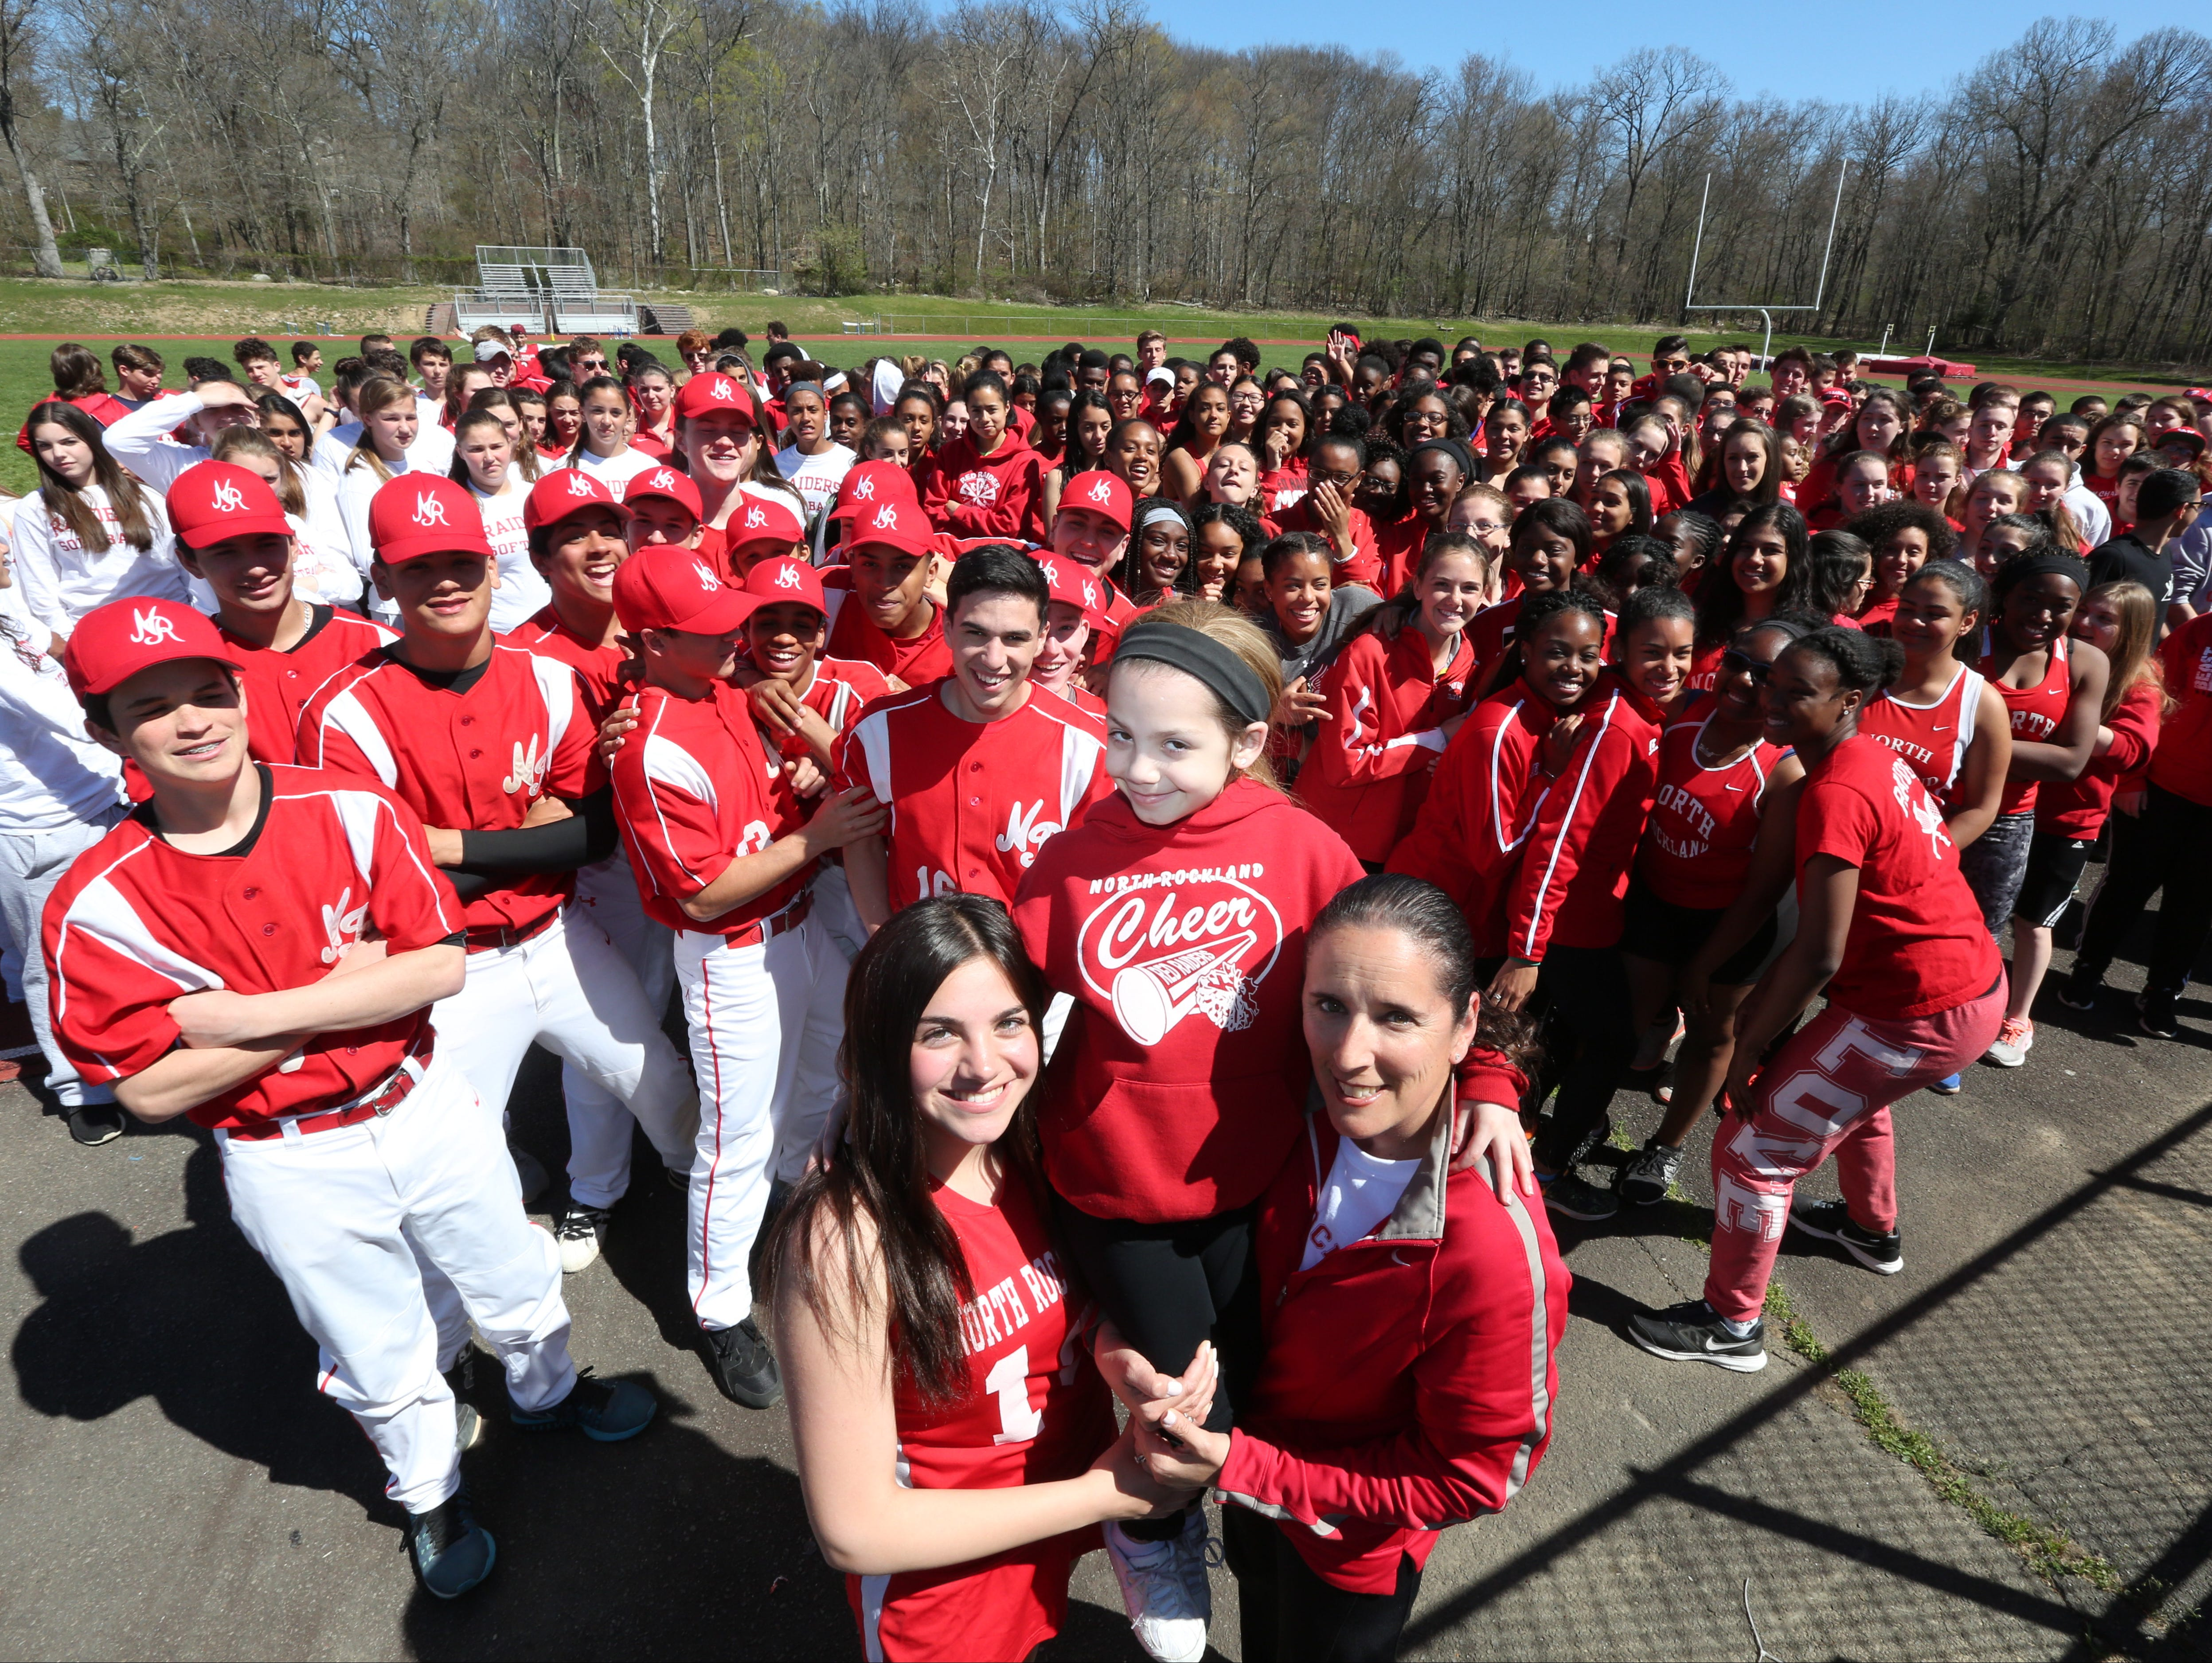 """Athletes gather behind Stony Point Elementary third-grader Gabby DiCarlo, who is being held up by her sister, Isabella DiCarlo and Jennifer LaBier, Stony Point Elementary teacher and high school tennis coach, at North Rockland High School April 20, 2016. They got together to spread the word about the second annual """"Sports Day"""" at the high school on April 30. So far they have raised $14,000 for cancer and cystic fibrosis."""